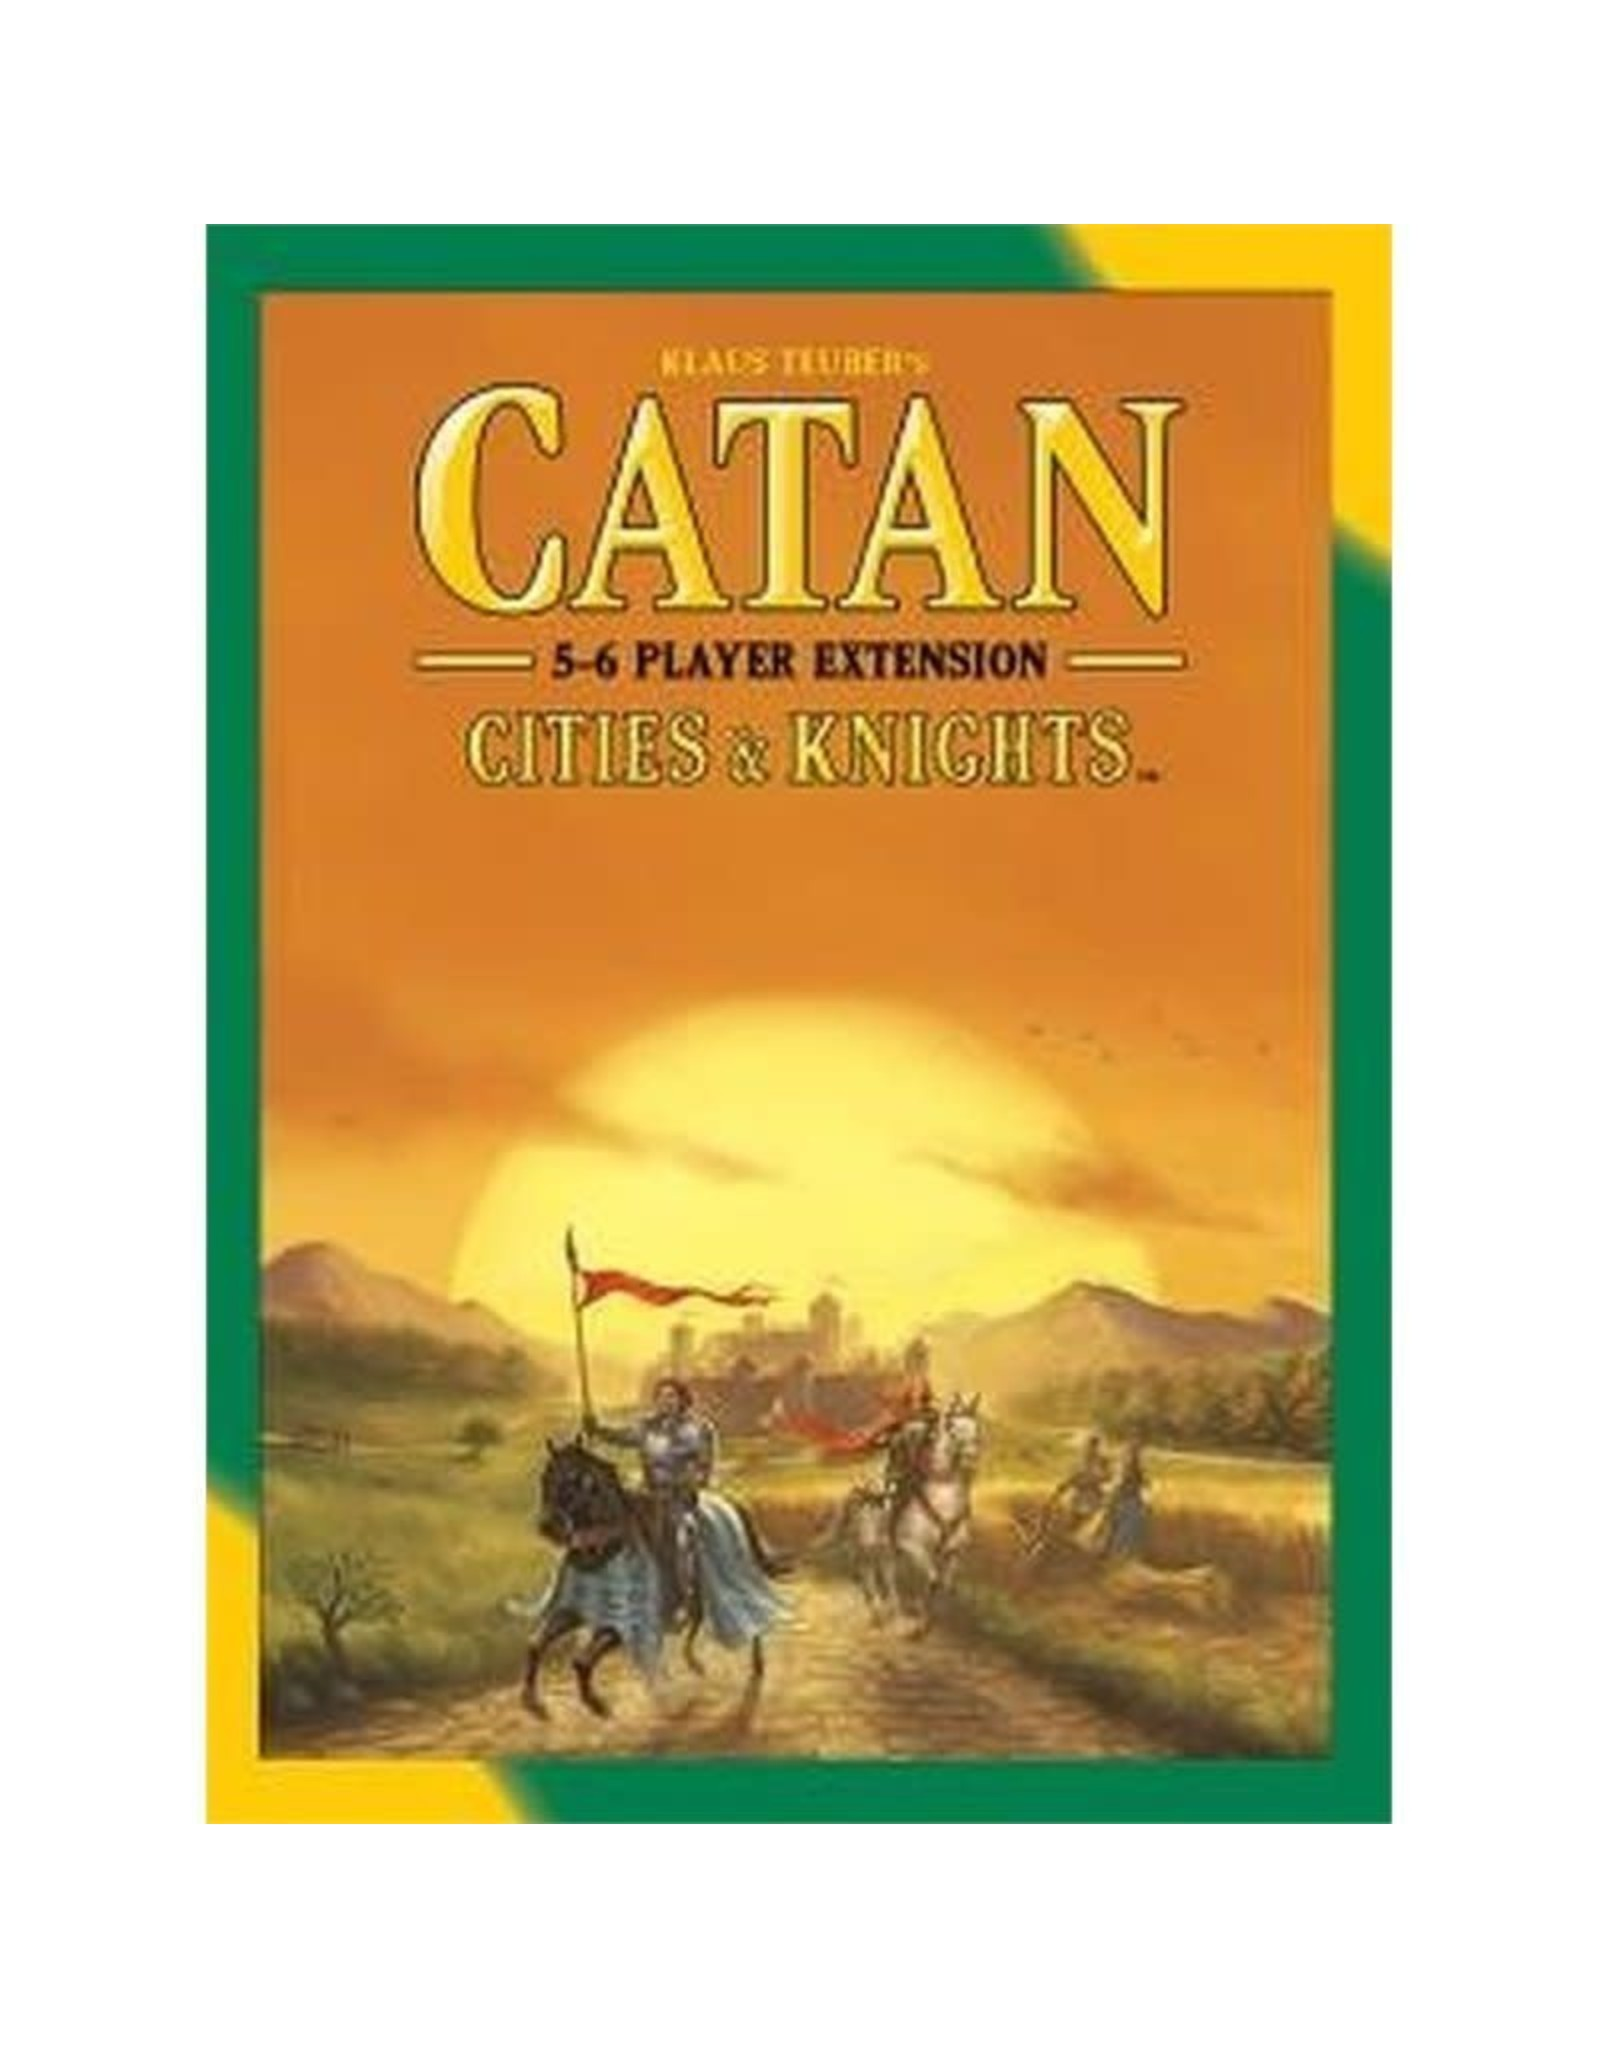 Catan Studio Catan: Cities and Knights 5-6 Player Extension